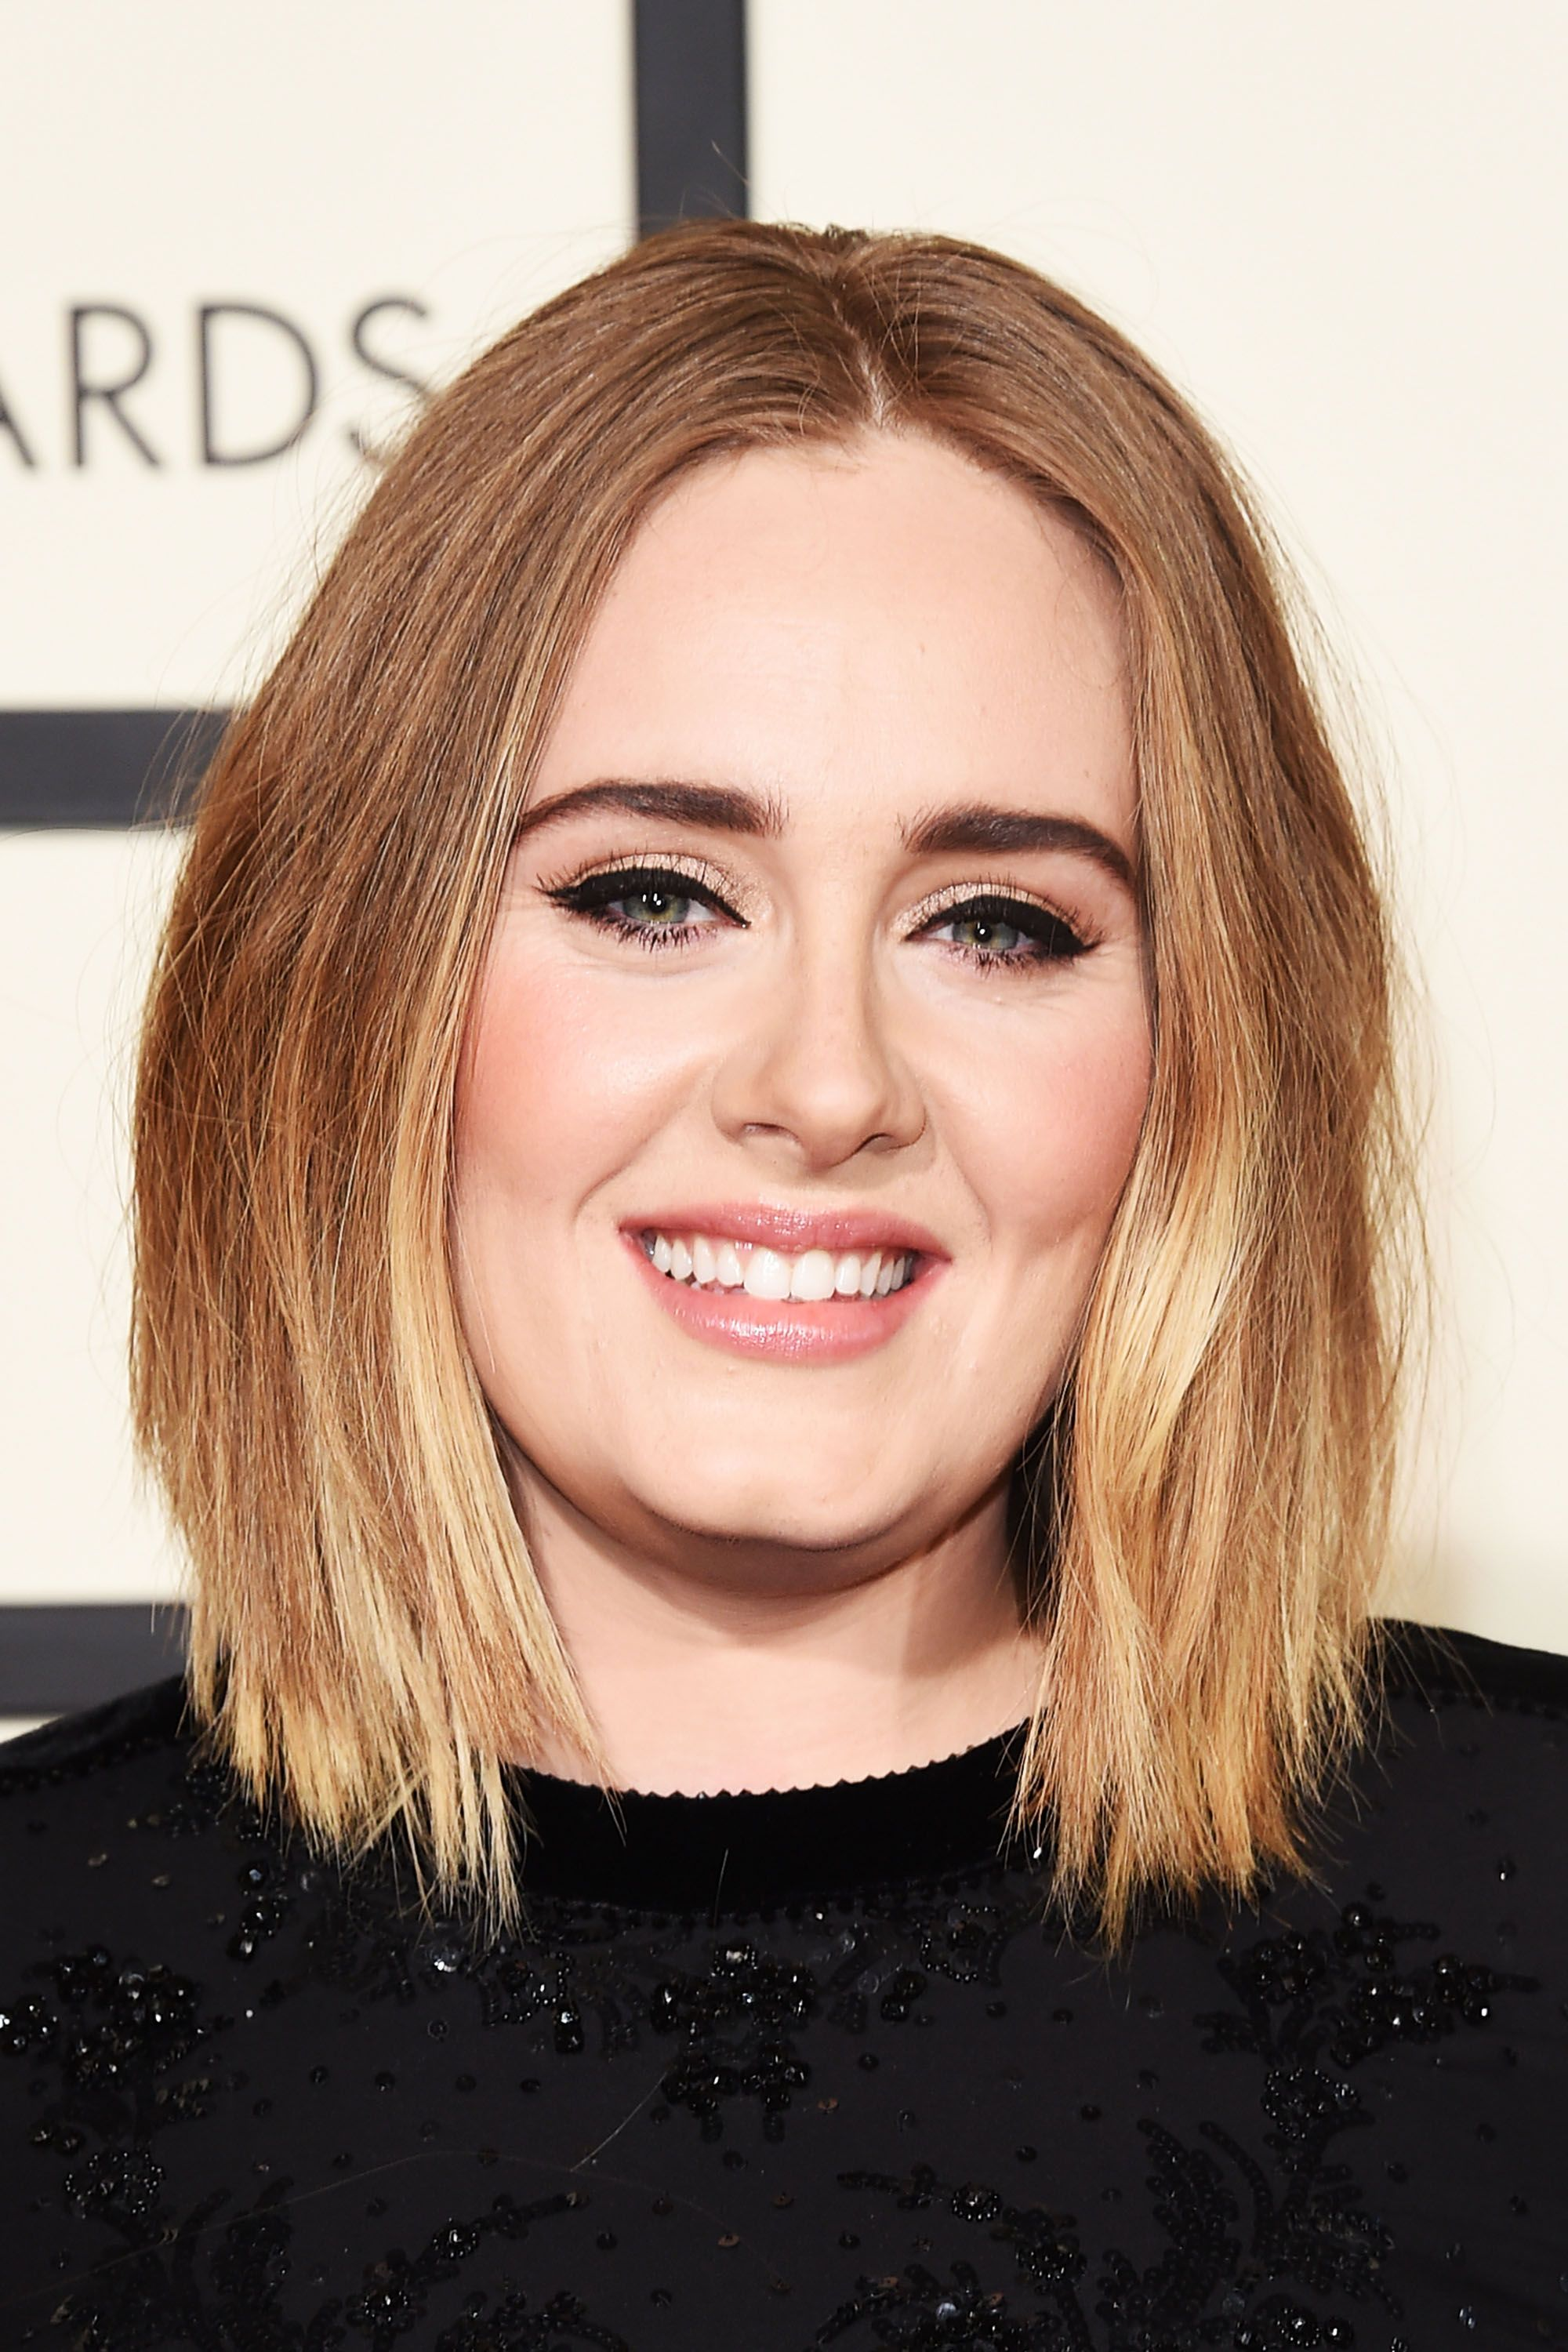 15 Cute Hairstyles For Round Faces 15 Short Medium And